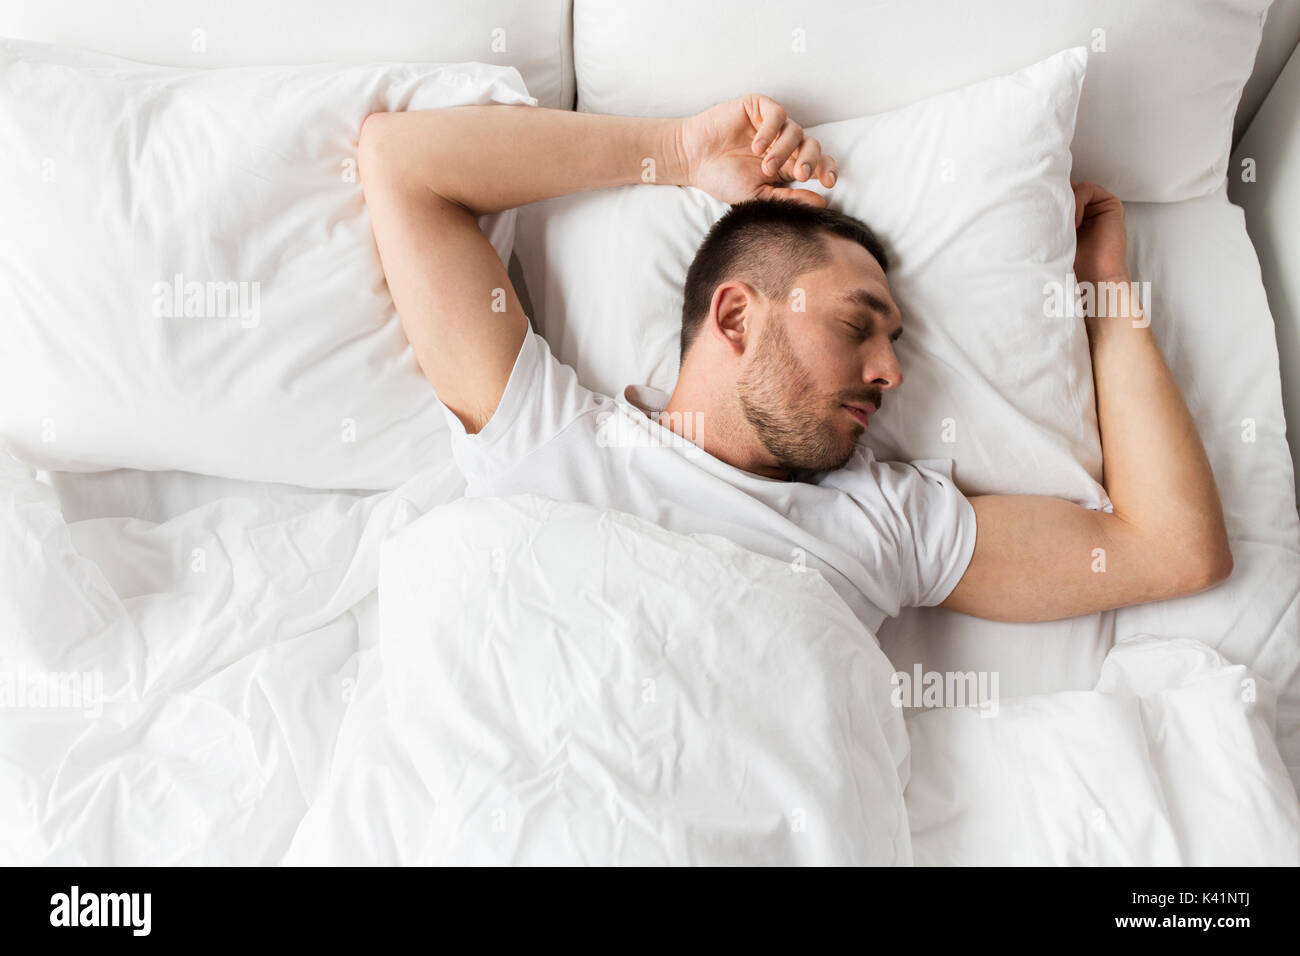 man sleeping in bed at home - Stock Image